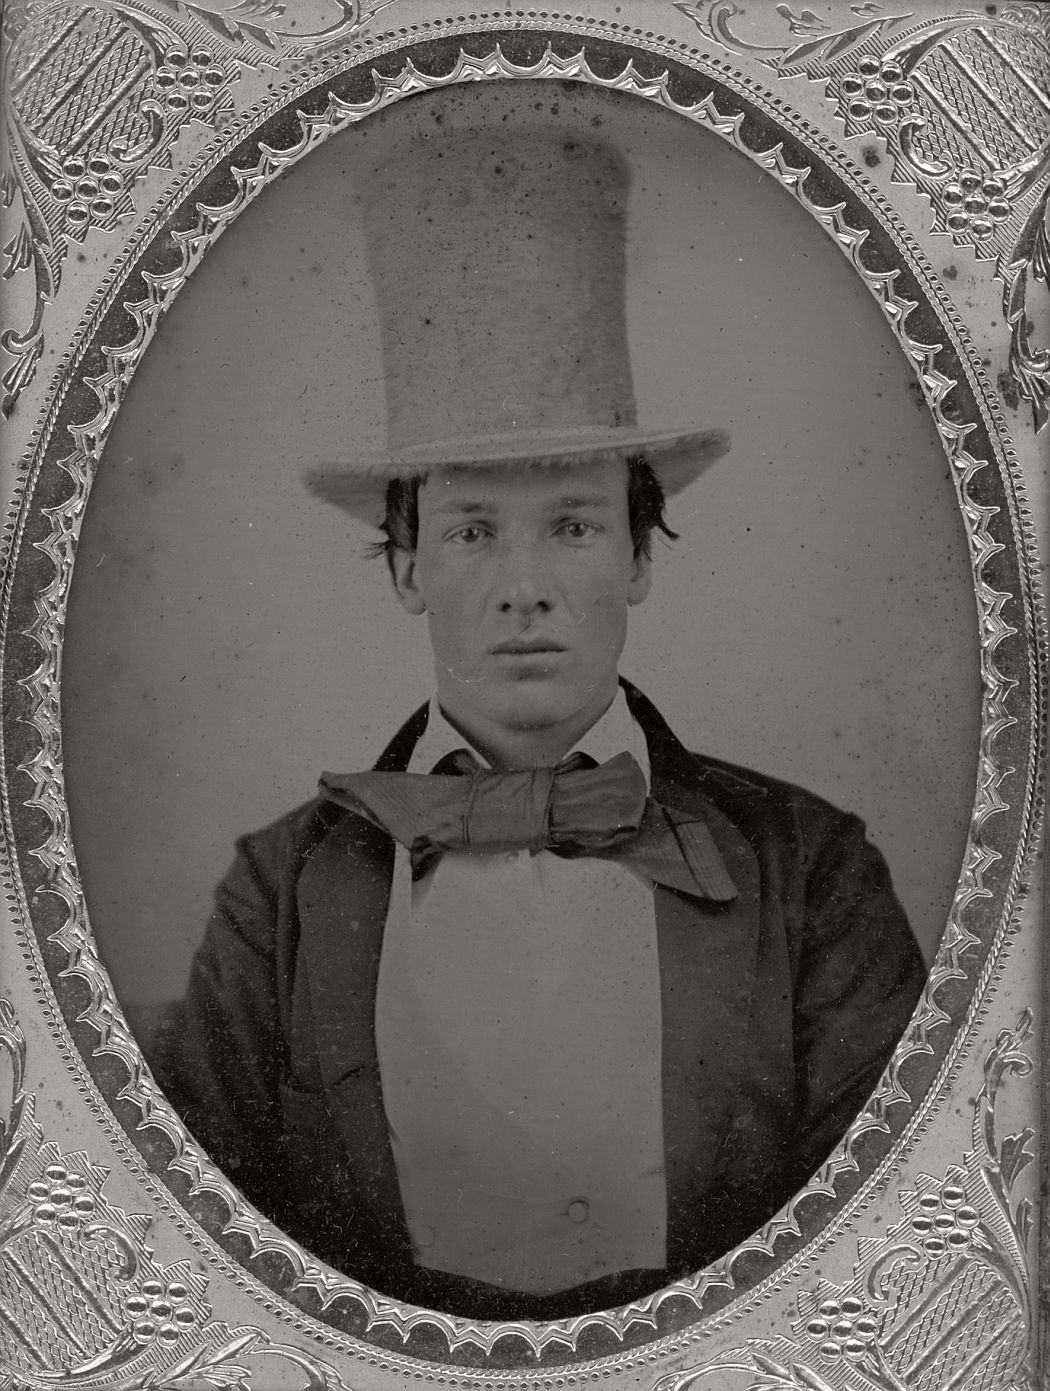 victorian-era-daguerreotype-of-men-in-hat-1850s-xix-century-10